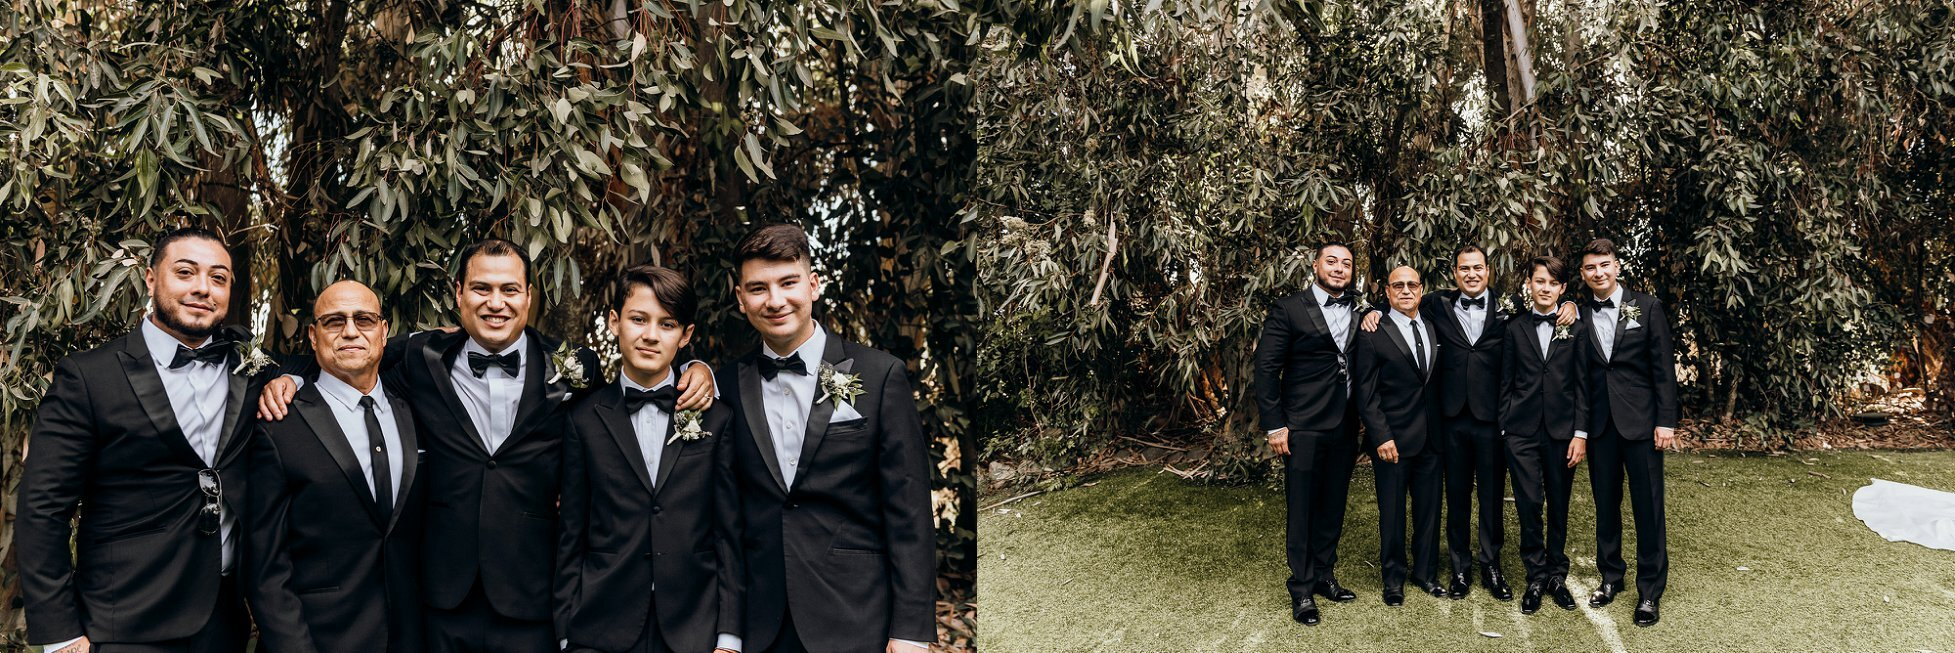 San Diego Wedding Photography - Twin Oaks Gardens_0153.jpg